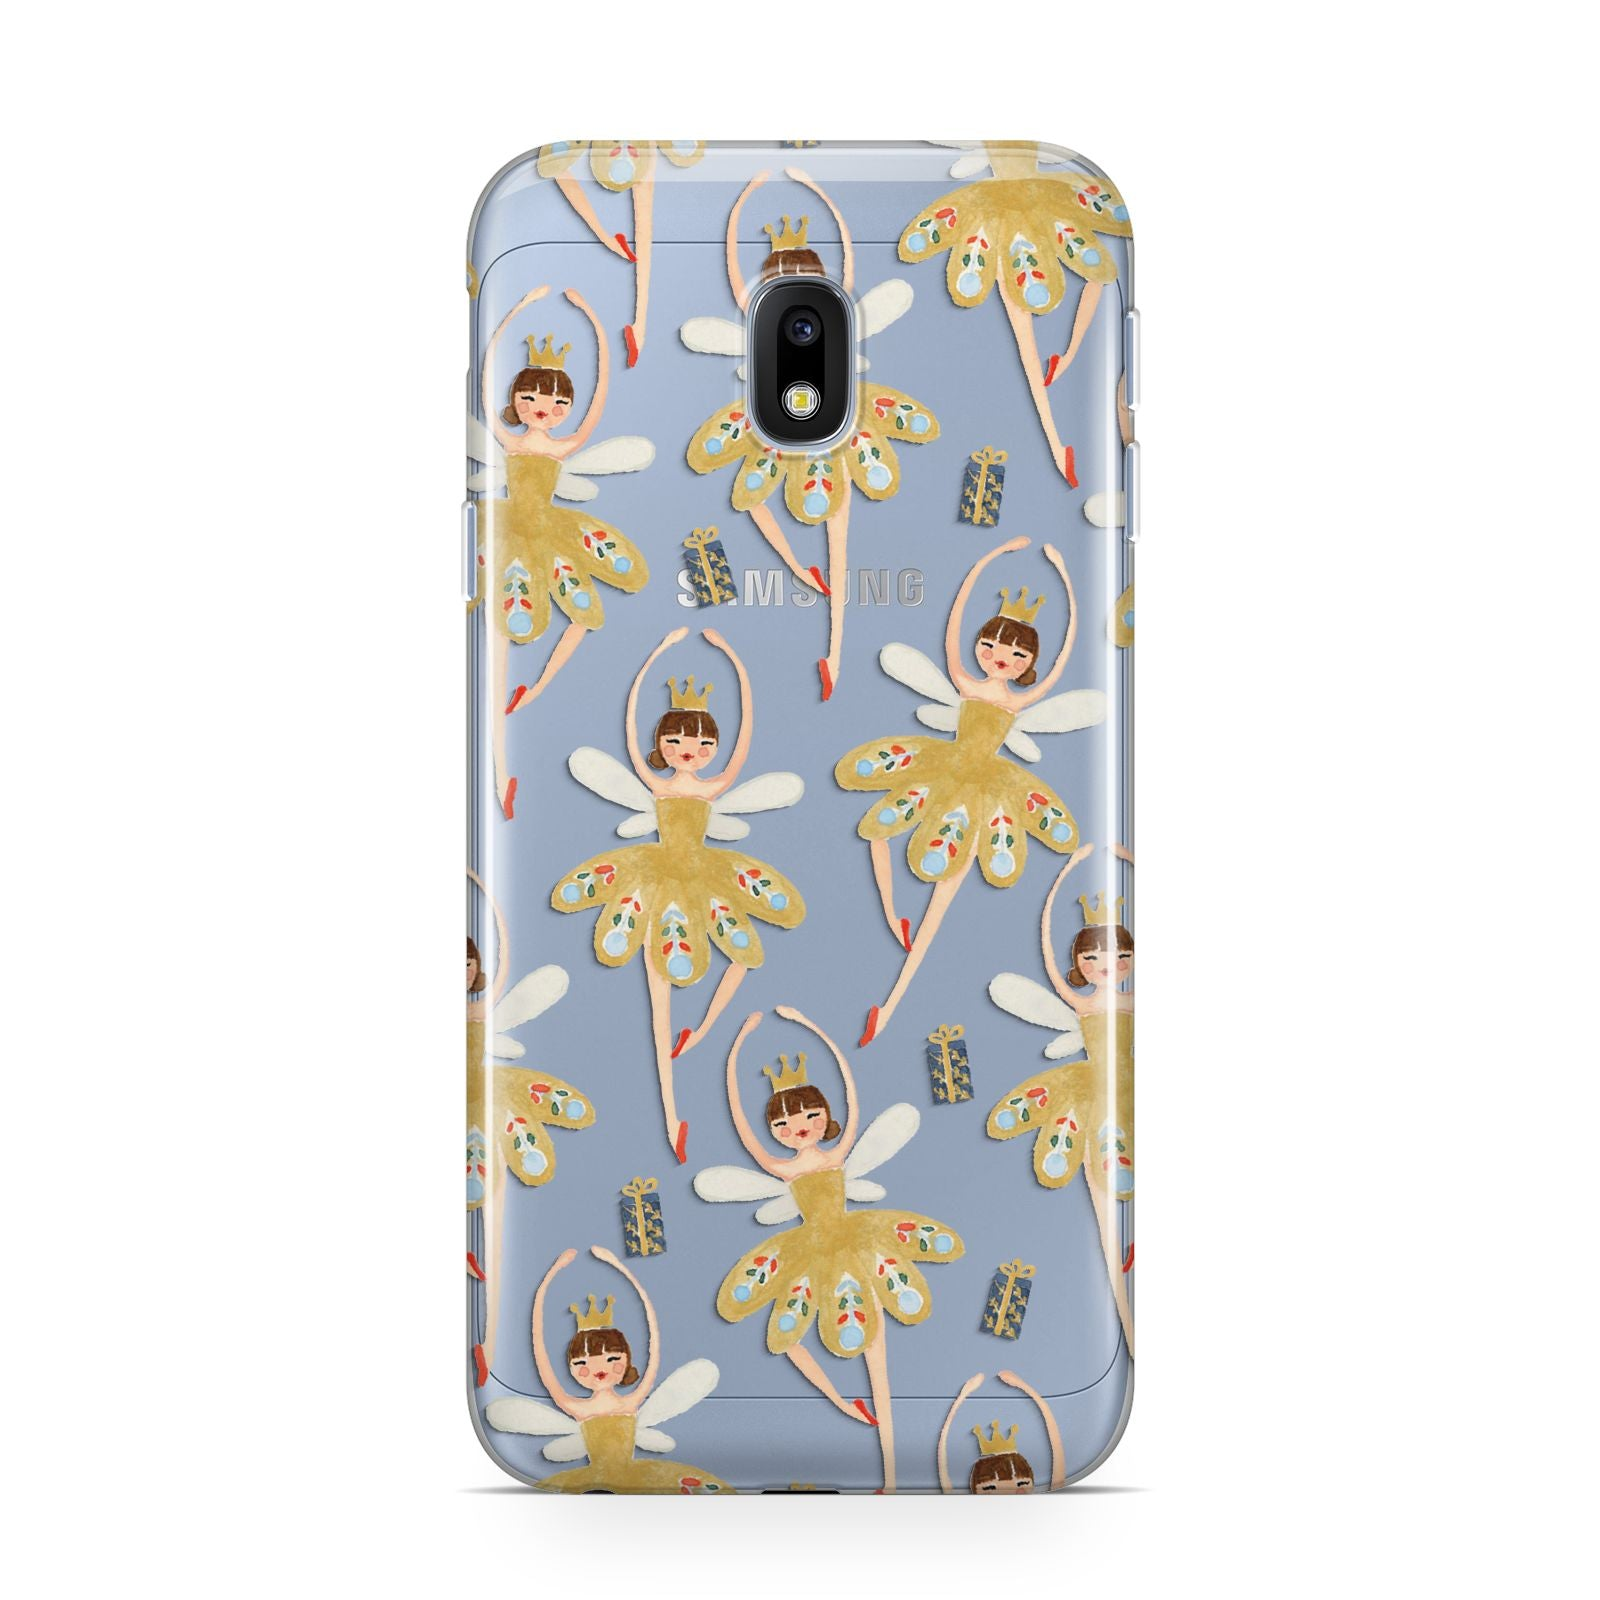 Dancing ballerina princess Samsung Galaxy J3 2017 Case